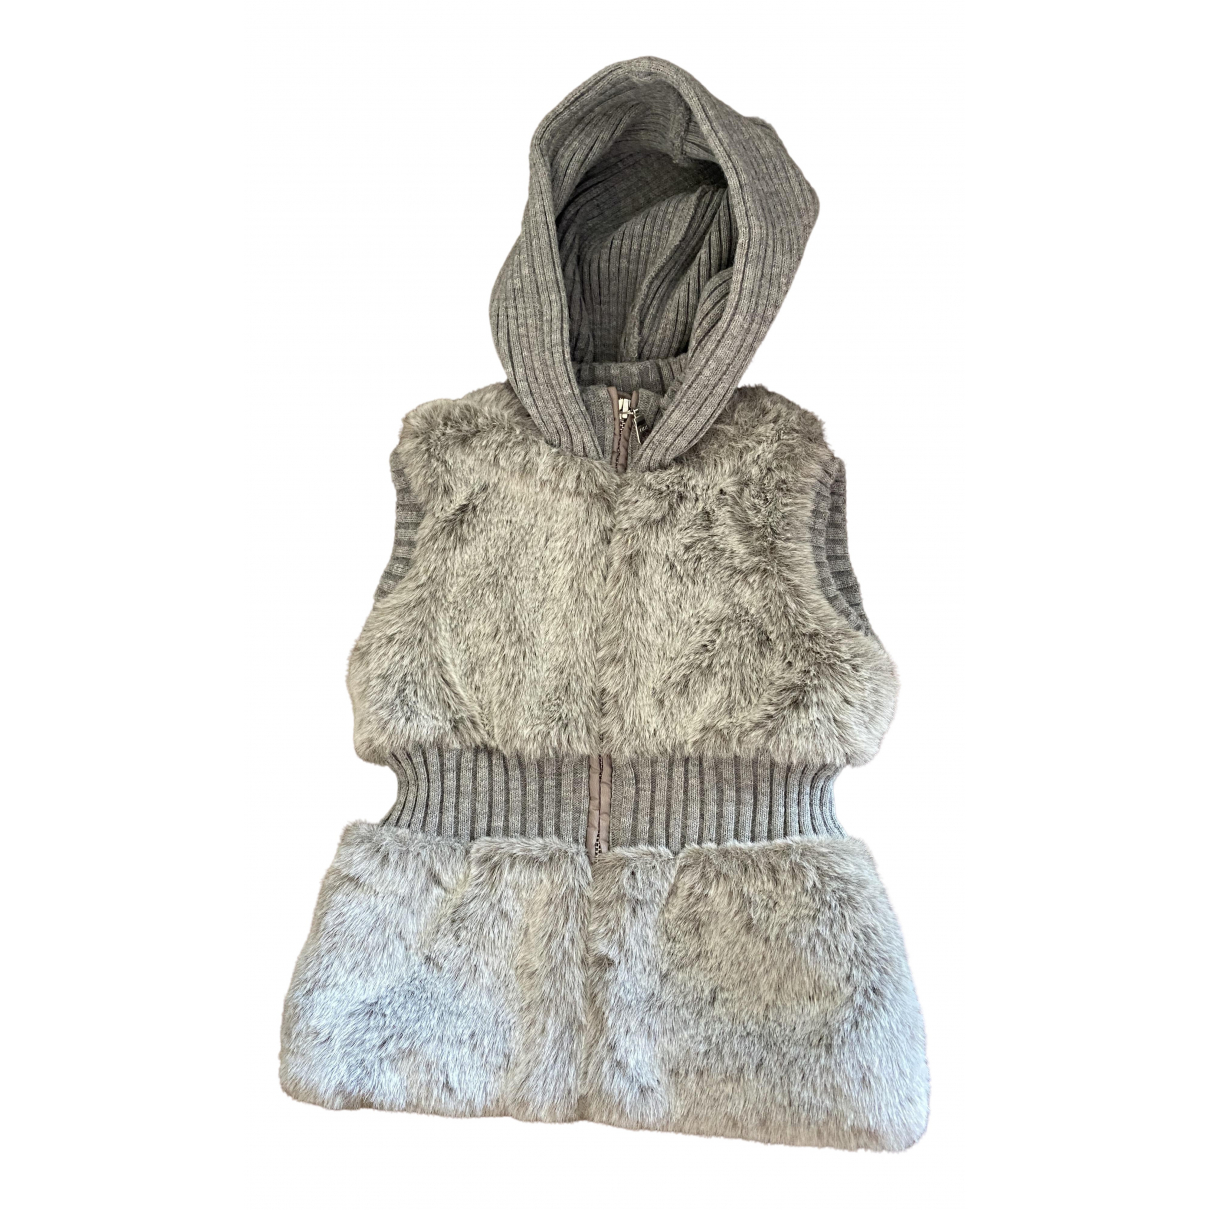 Lapin House N Grey Wool jacket & coat for Kids 4 years - until 40 inches UK